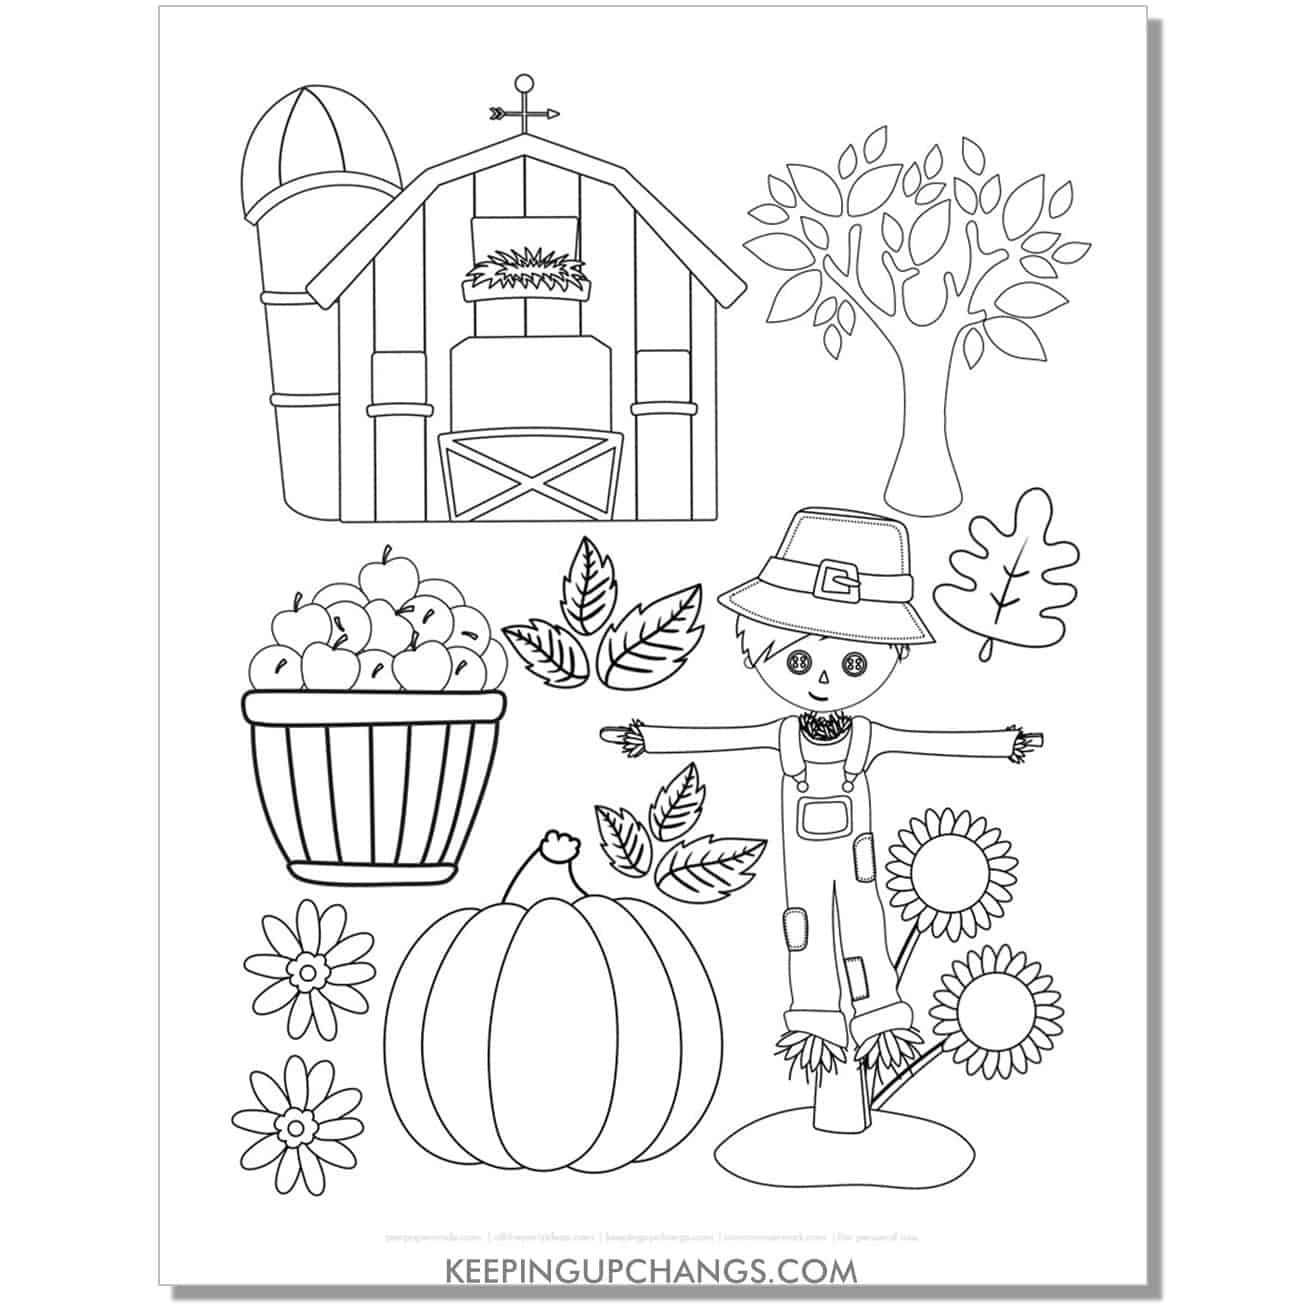 free autumn barn, scarecrow, sunflower, apple, pumpkin coloring page for fall, thanksgiving.